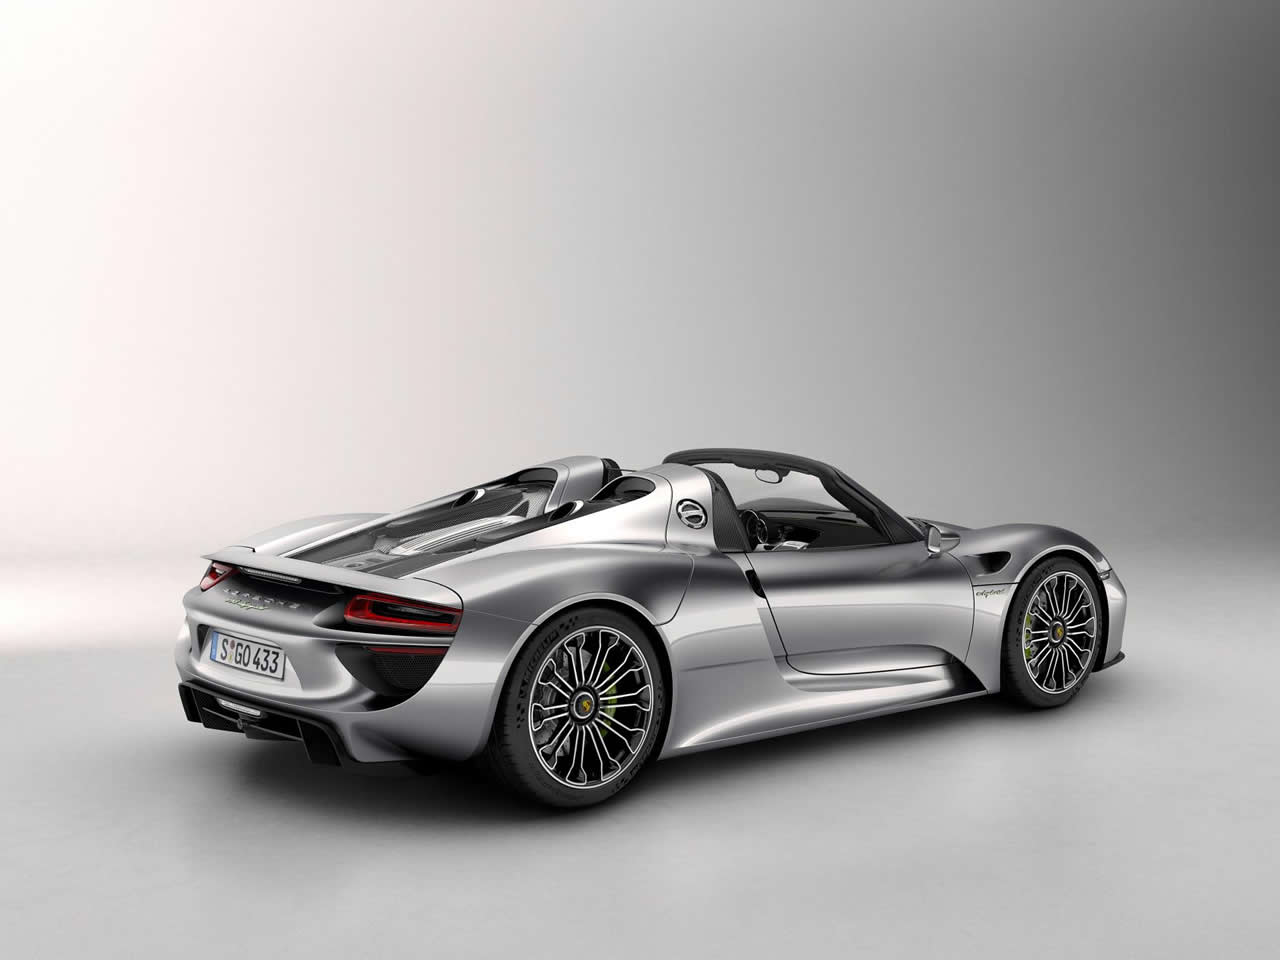 download wallpaper images of the porsche 918 spyder by. Black Bedroom Furniture Sets. Home Design Ideas